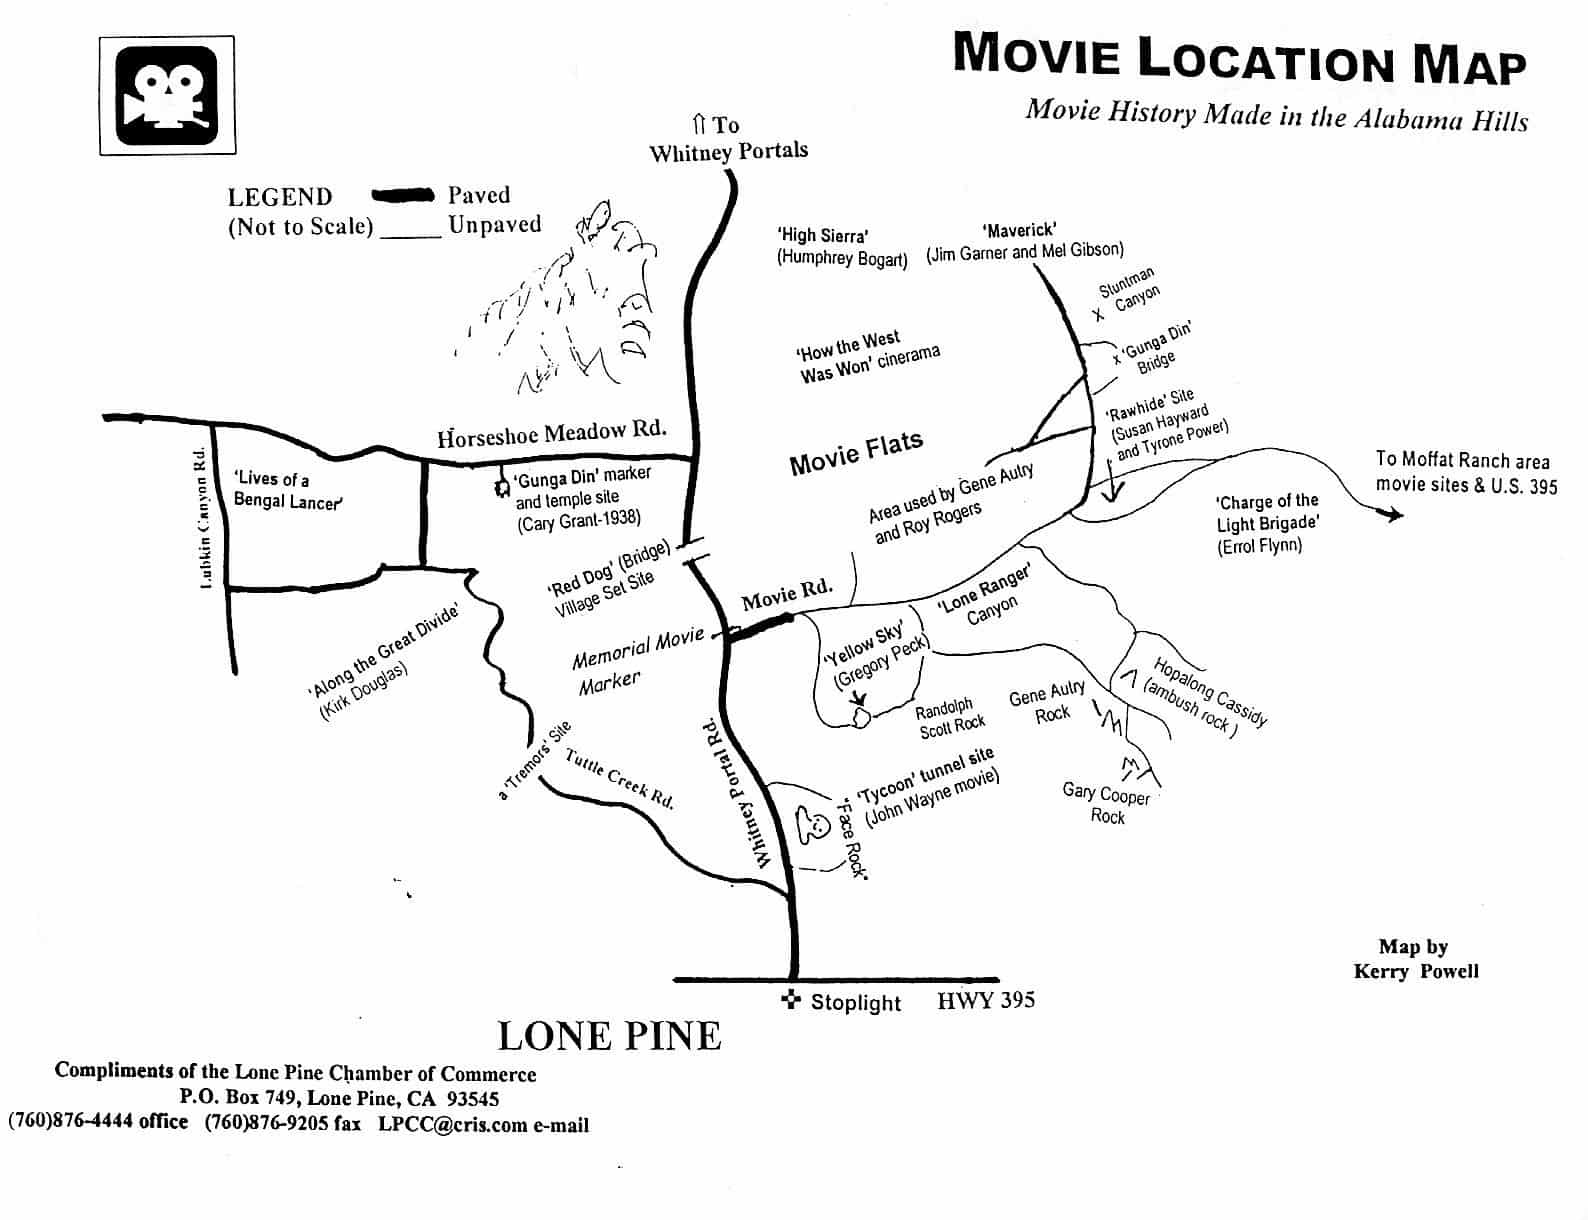 alabama hills movie location map